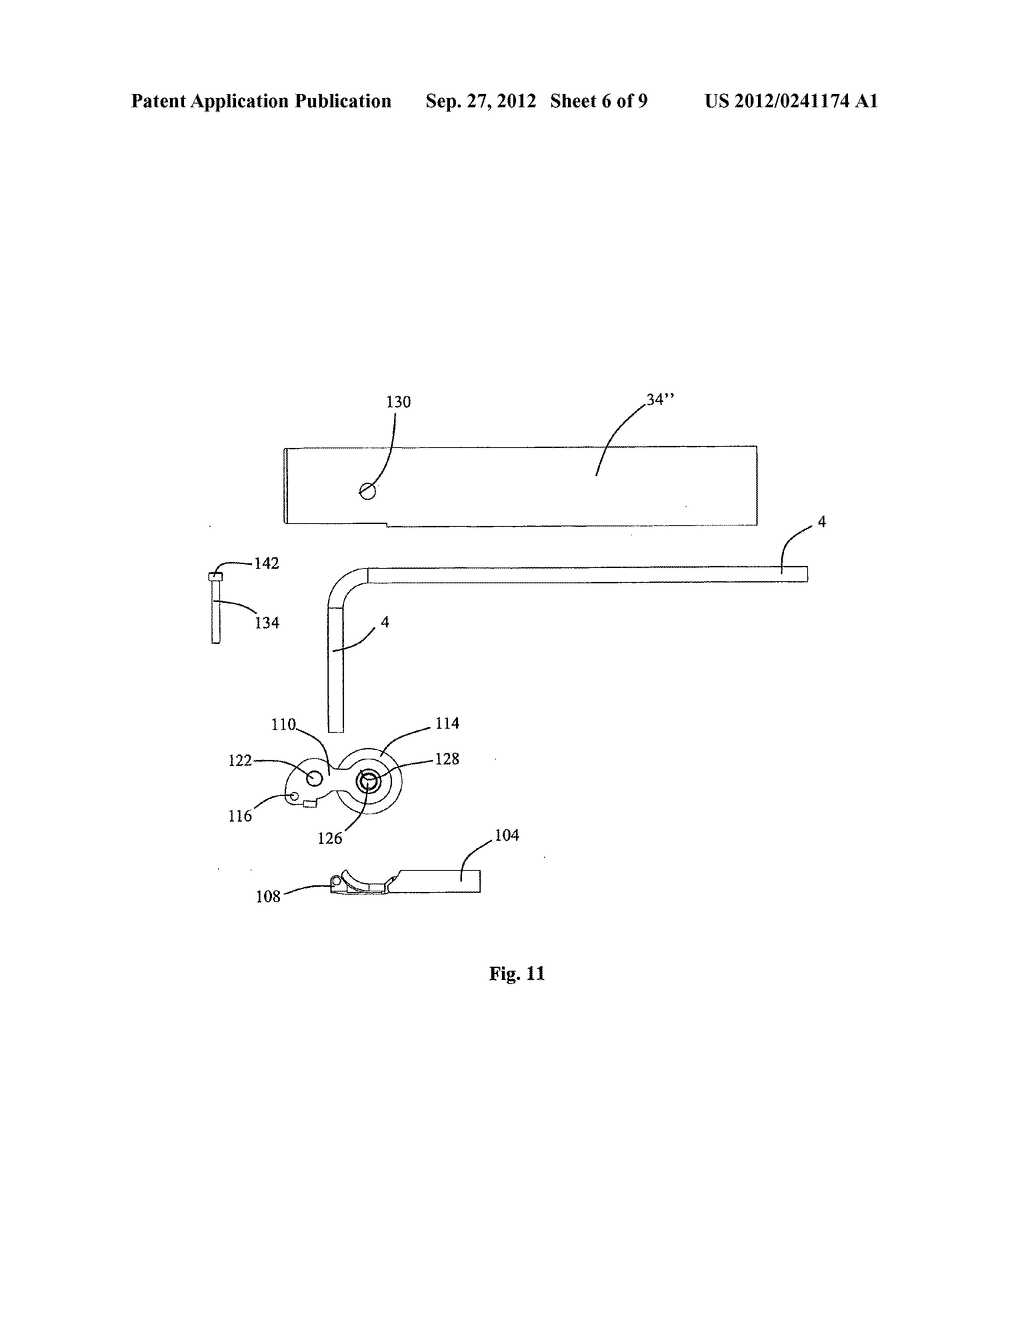 INJECTION MODULE, METHOD FOR USE FOR LATERAL INSERTION AND BENDING OF A     COILED TUBING VIA A SIDE OPENING IN A WELL - diagram, schematic, and image 07